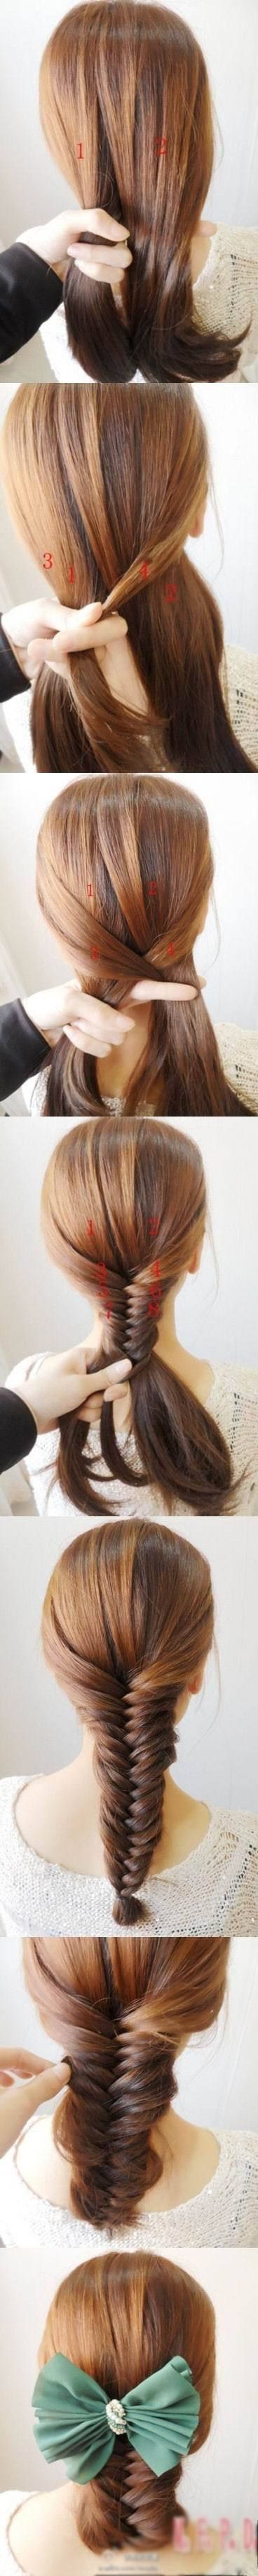 best hair images on pinterest braid bun updo braided updo and